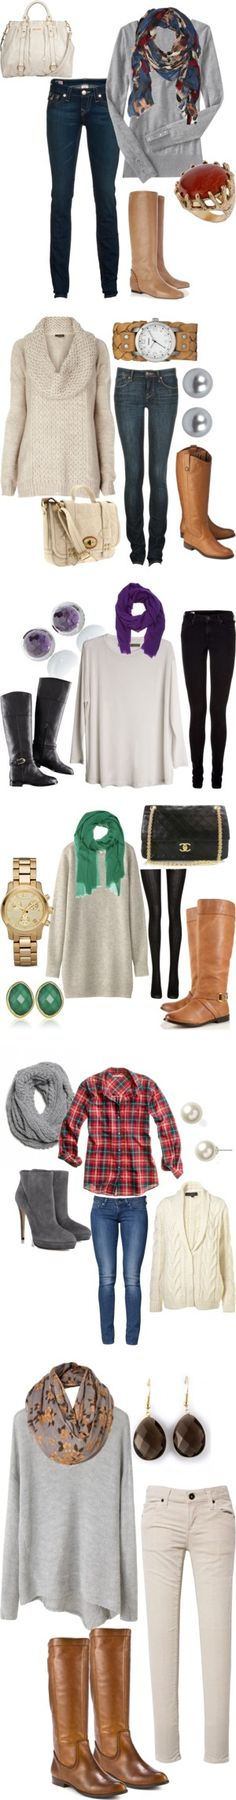 skinny jeans/leggings and big, comfy sweaters.. fall favorites